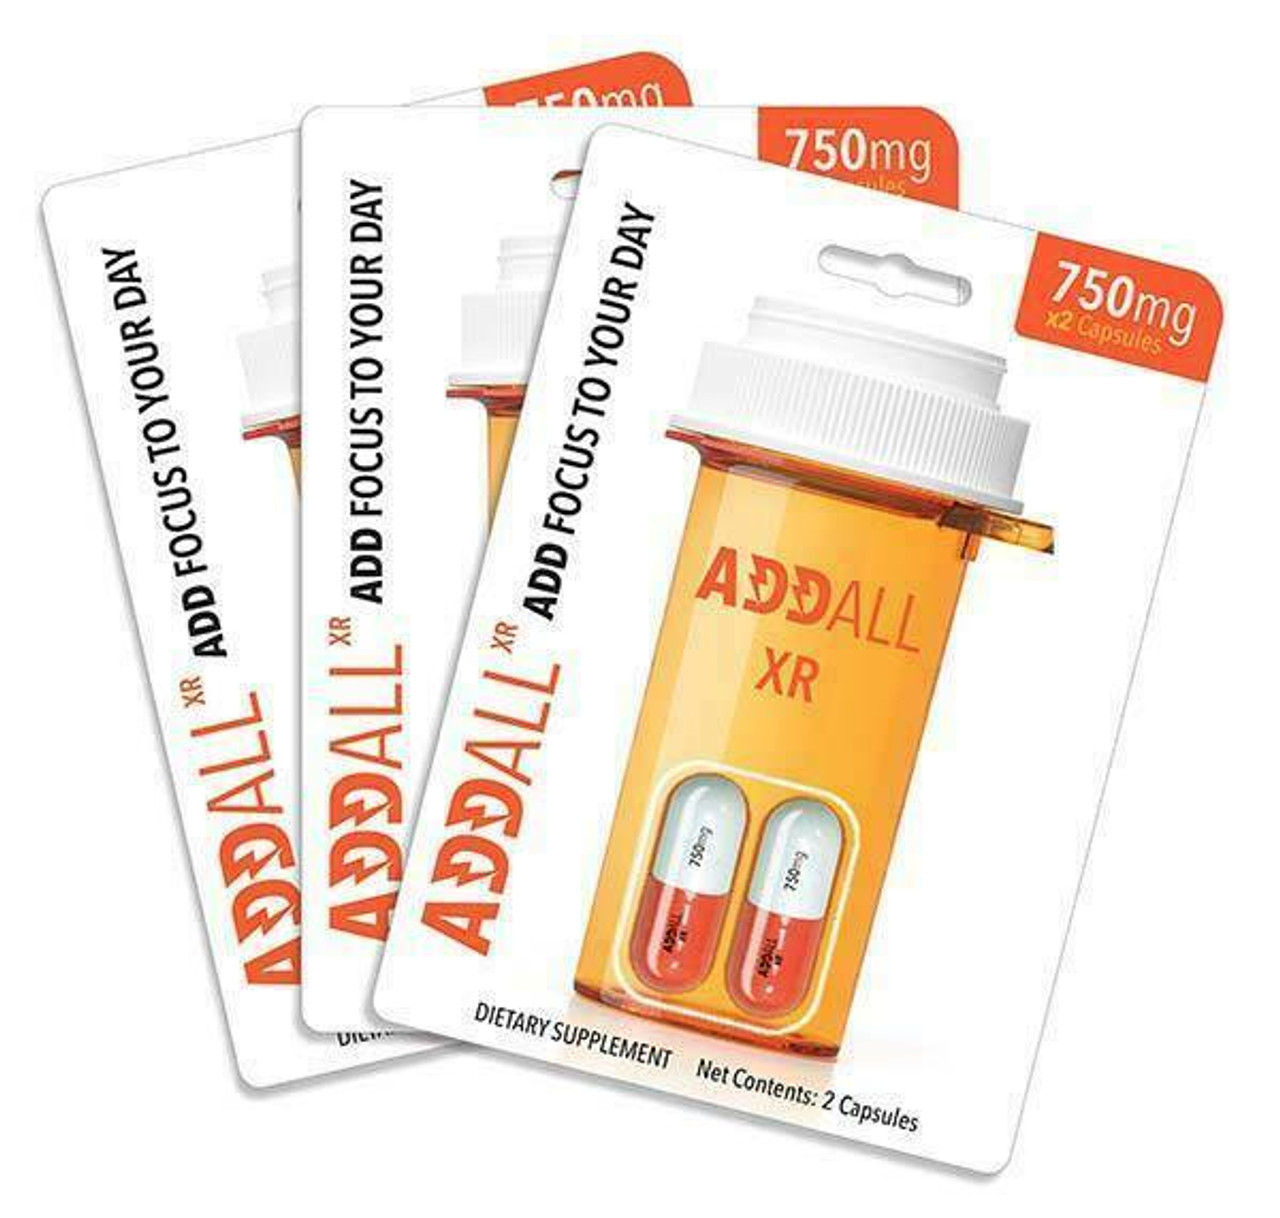 Addall Addall XR 2ct - Pack of 12 at The Cloud Supply